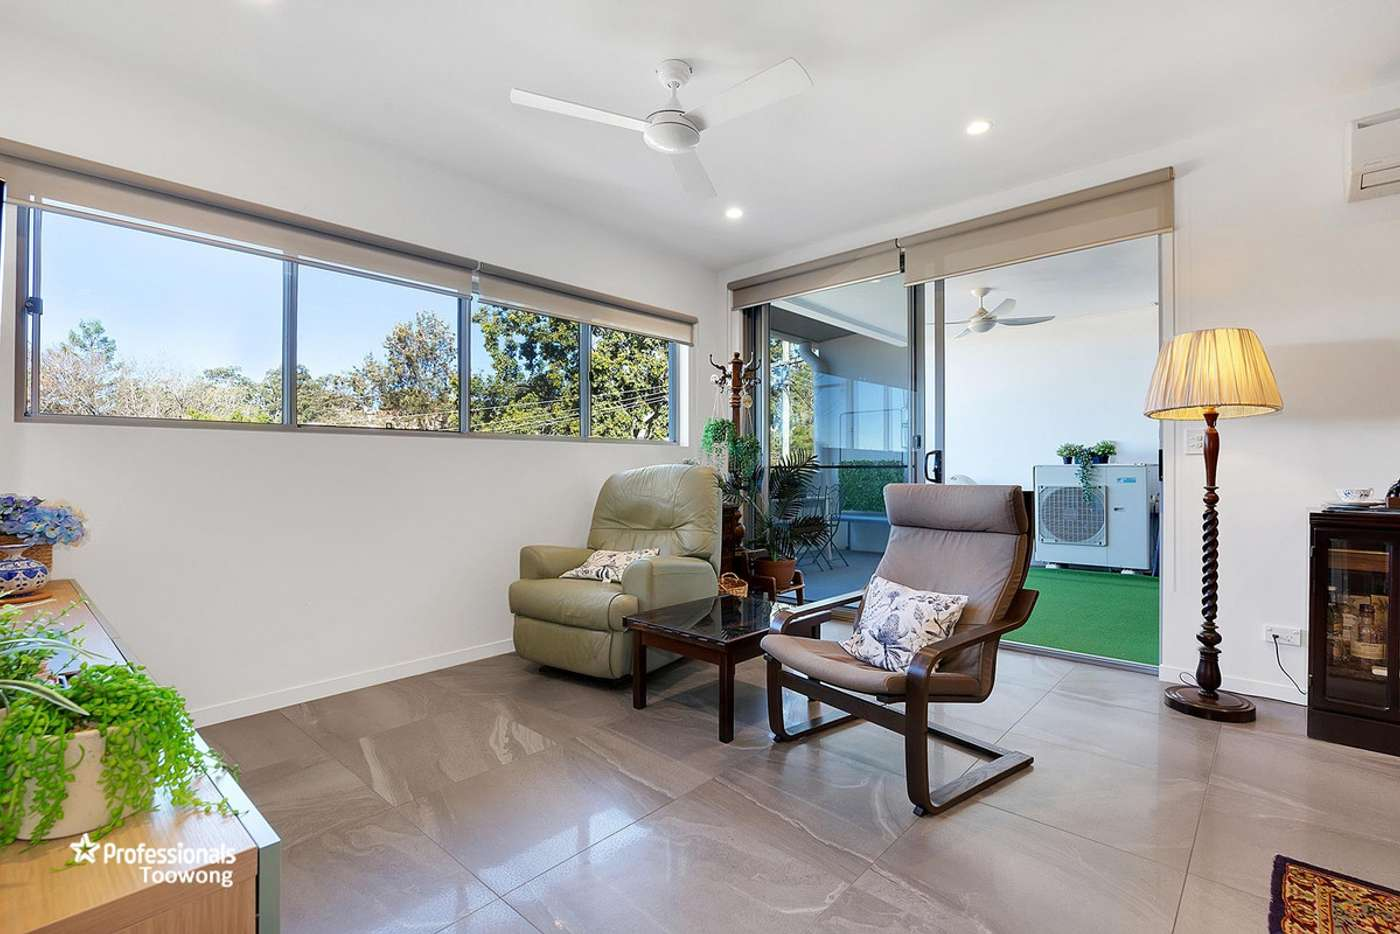 Sixth view of Homely unit listing, 10/31 Brasted Street, Taringa QLD 4068